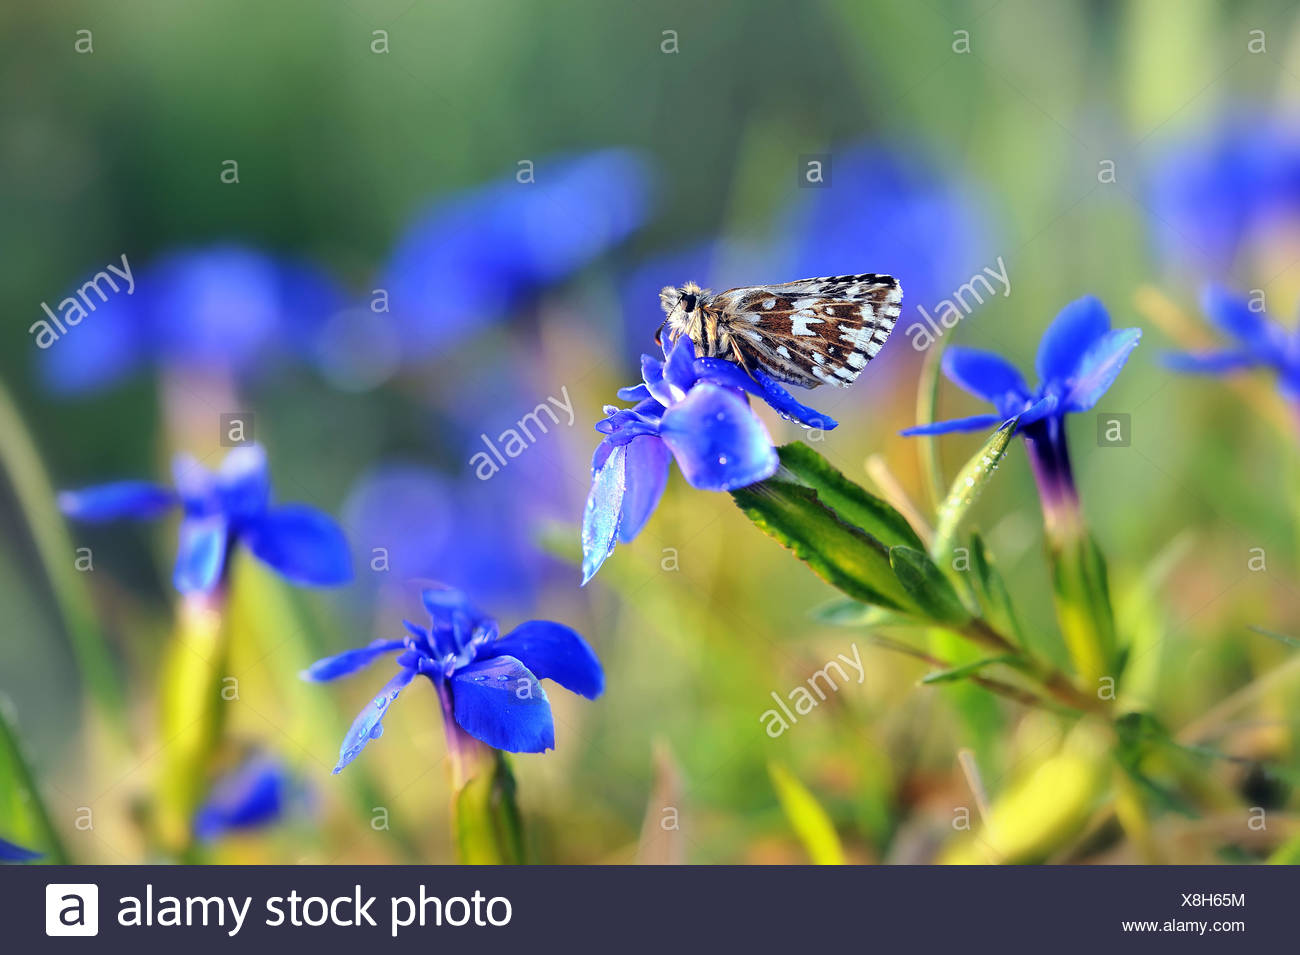 grizzled skipper on blue stemless gentian - Stock Image